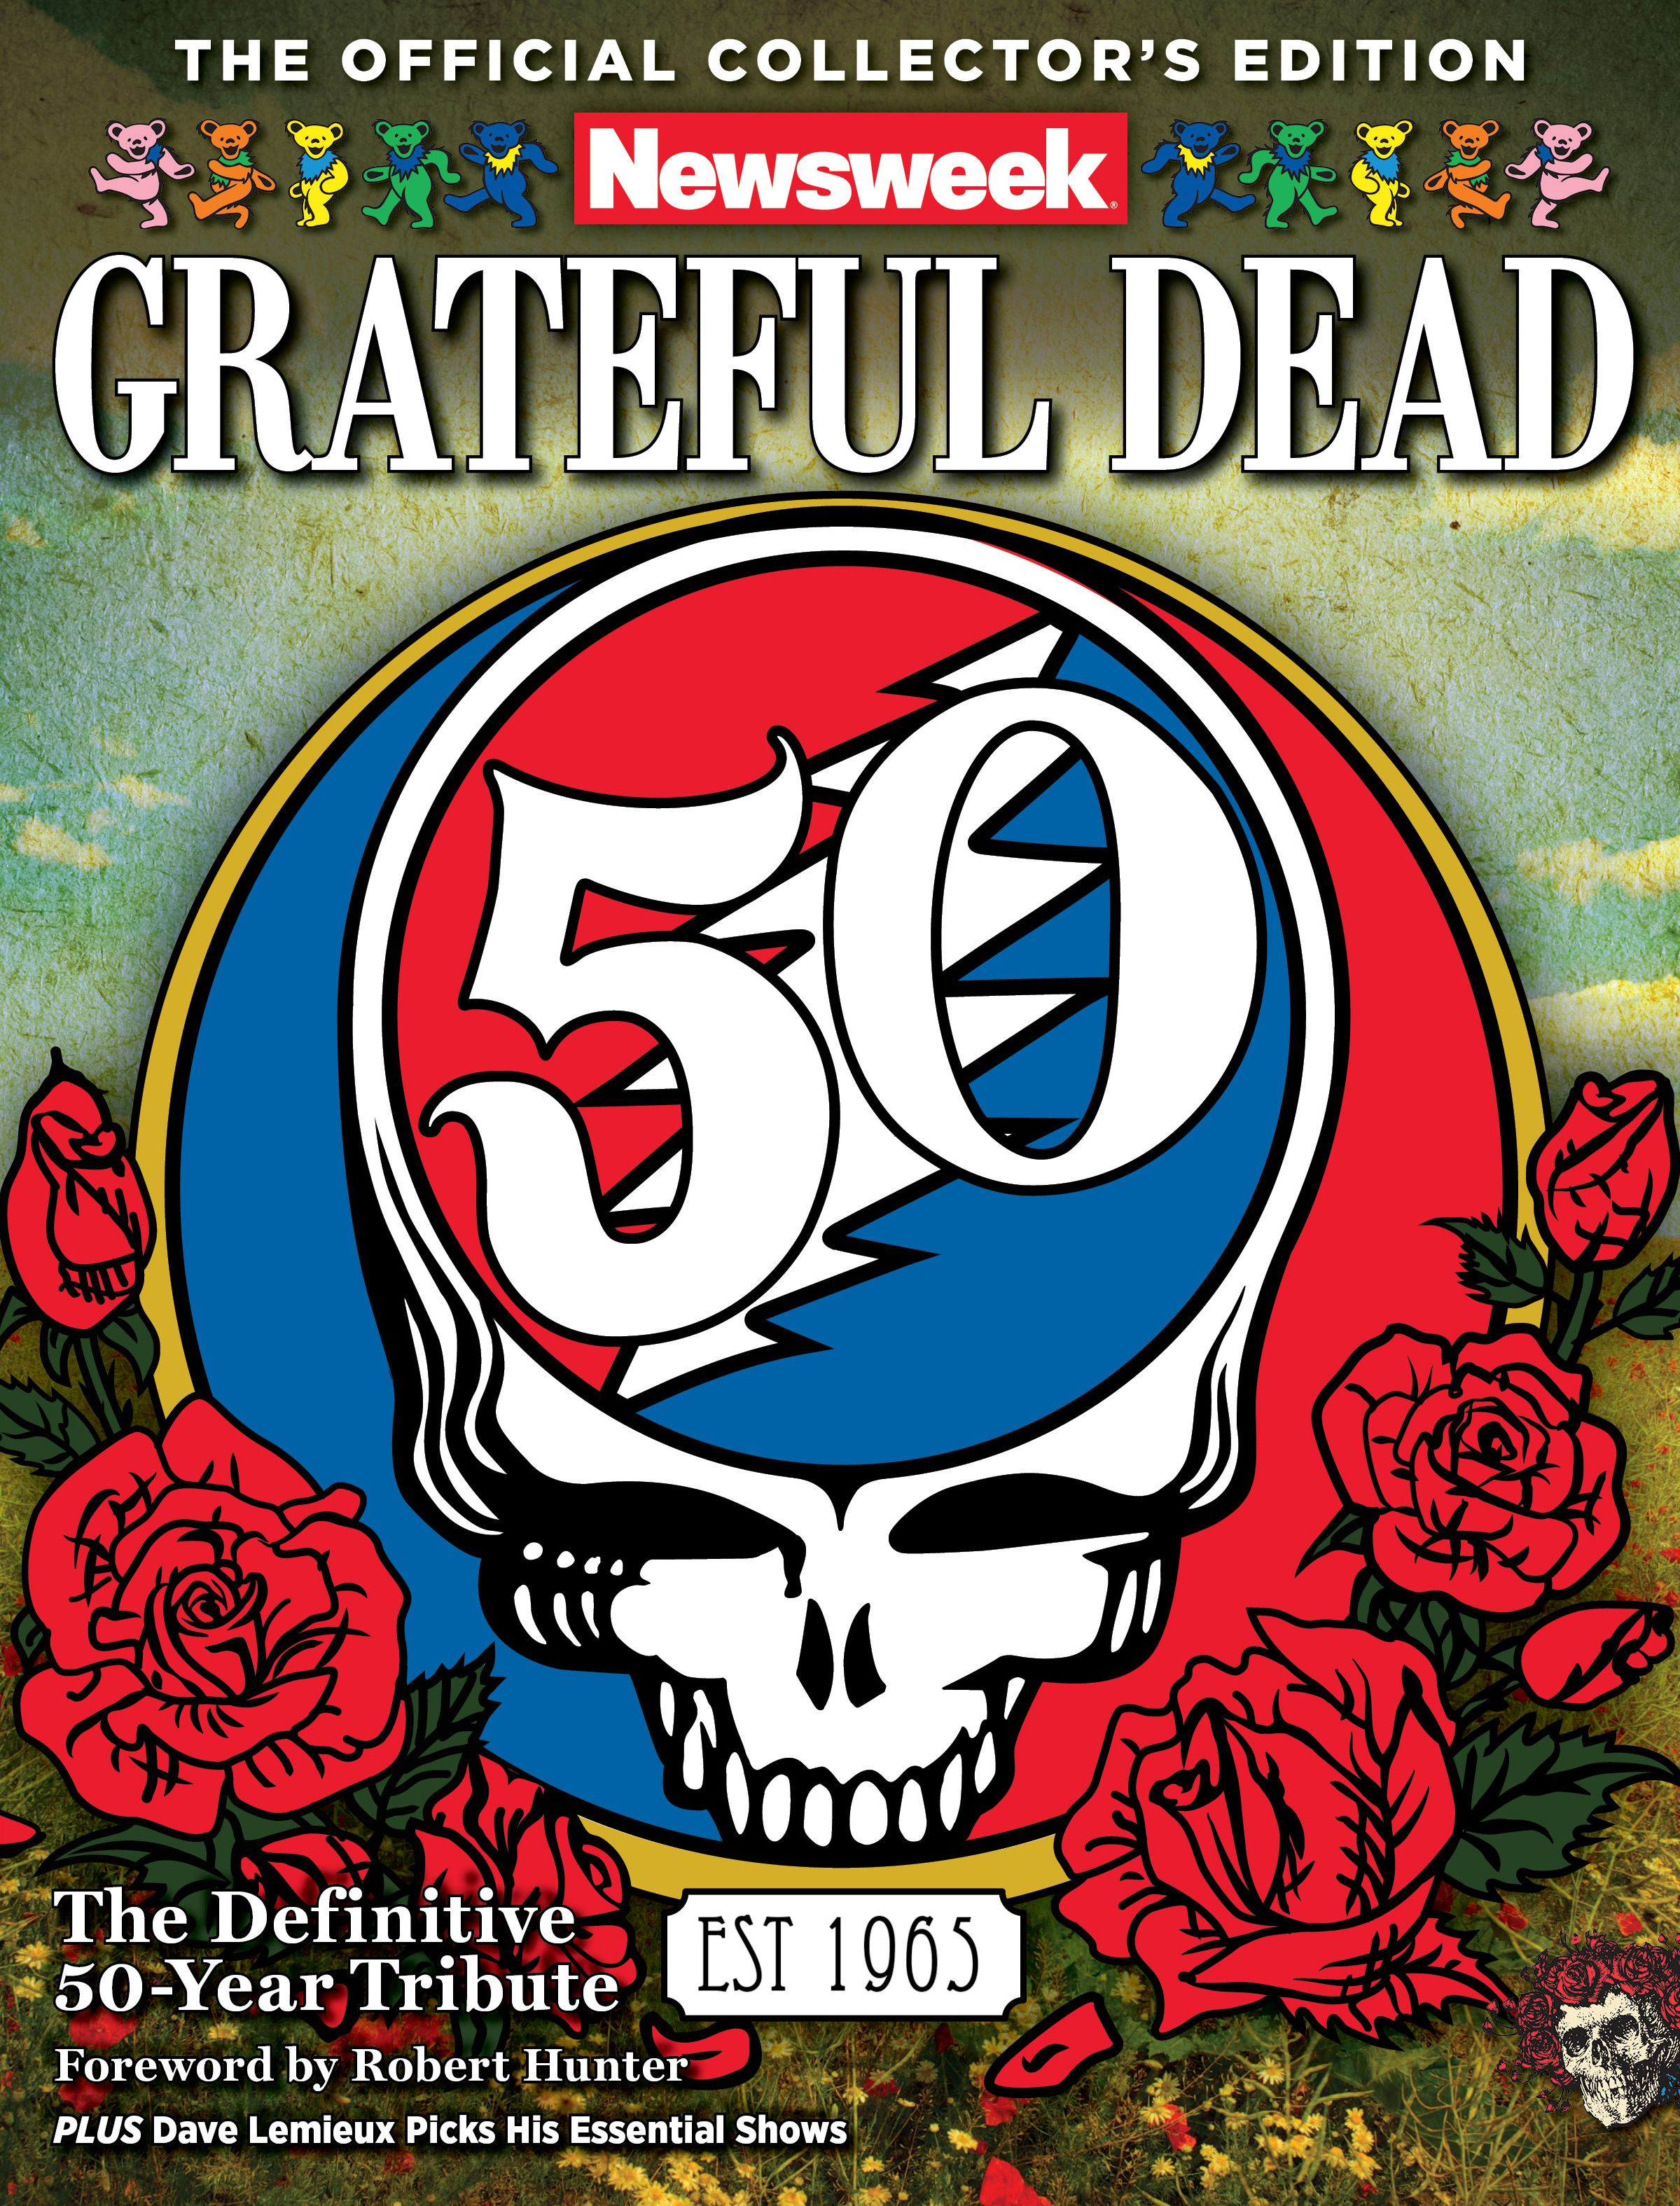 Grateful Dead Videos : photos the intense psychedelia of the grateful dead s poster art ~ Russianpoet.info Haus und Dekorationen